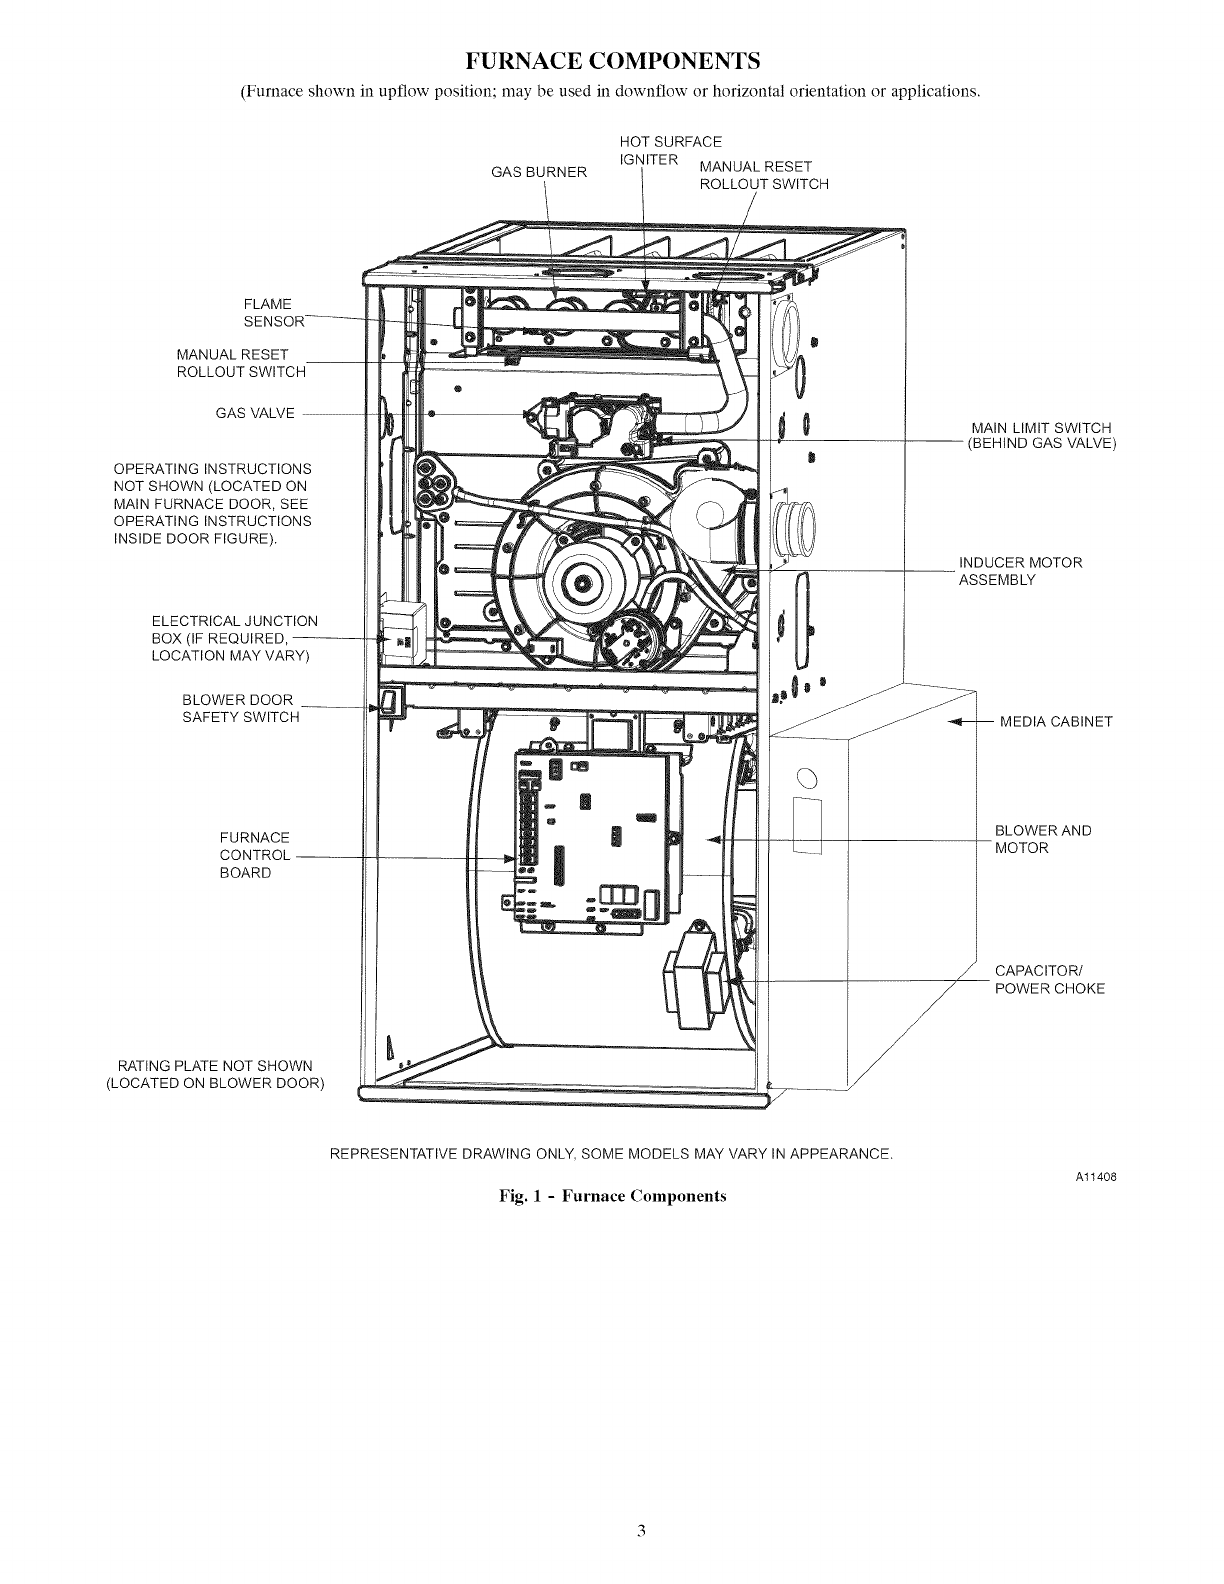 Tempstar Ac Unit Wiring Diagram besides Wiring Diagram For Ducane Gas Furnace in addition Bryant Air Conditioner Wiring Diagram as well Furnace Fan Limit Wiring Diagram moreover Trane Xl80 Furnace Wiring Diagram. on bard gas furnace wiring diagram